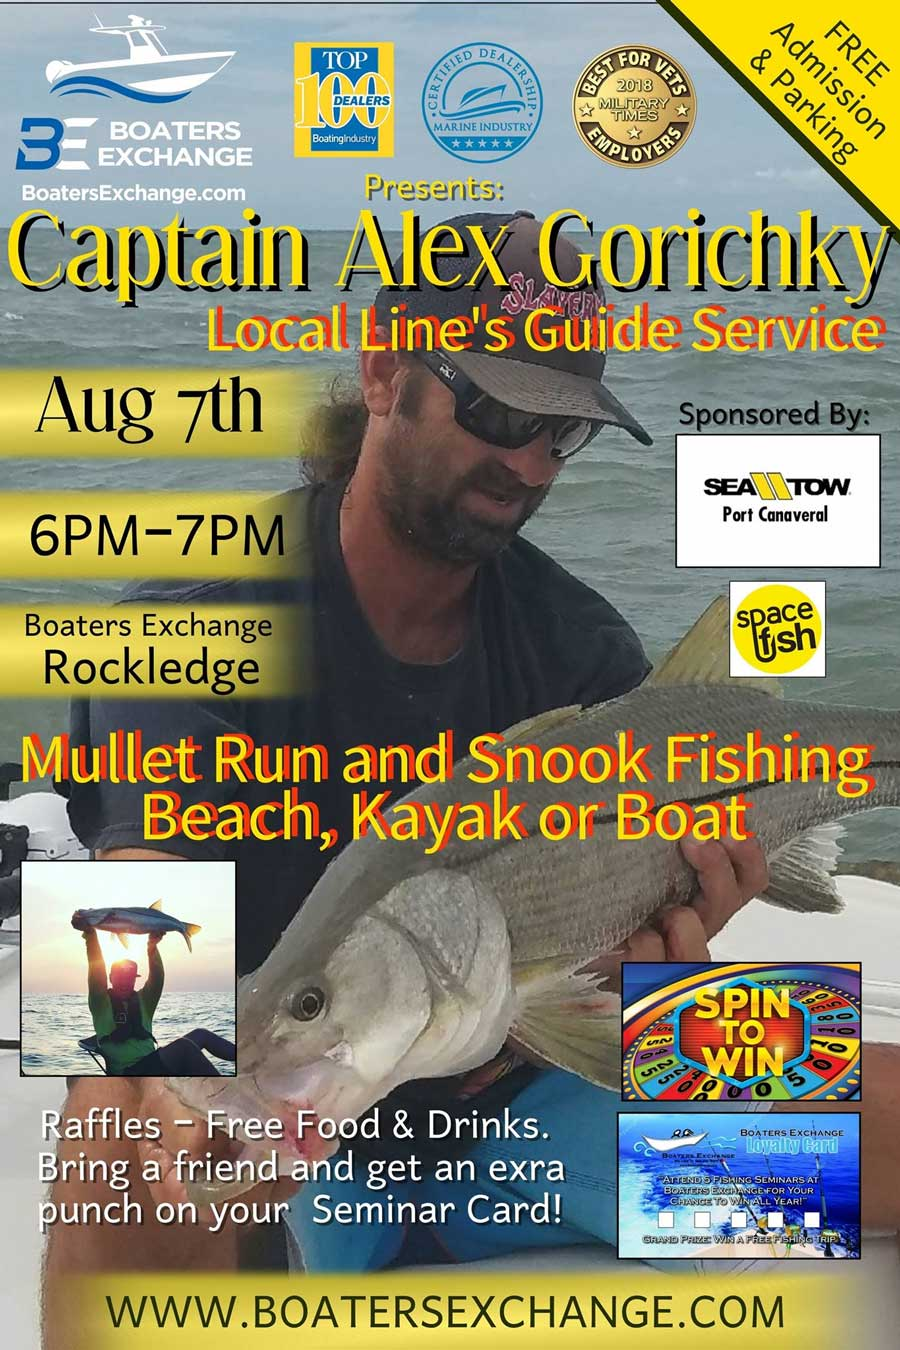 Capt. Alex Fishing Seminar